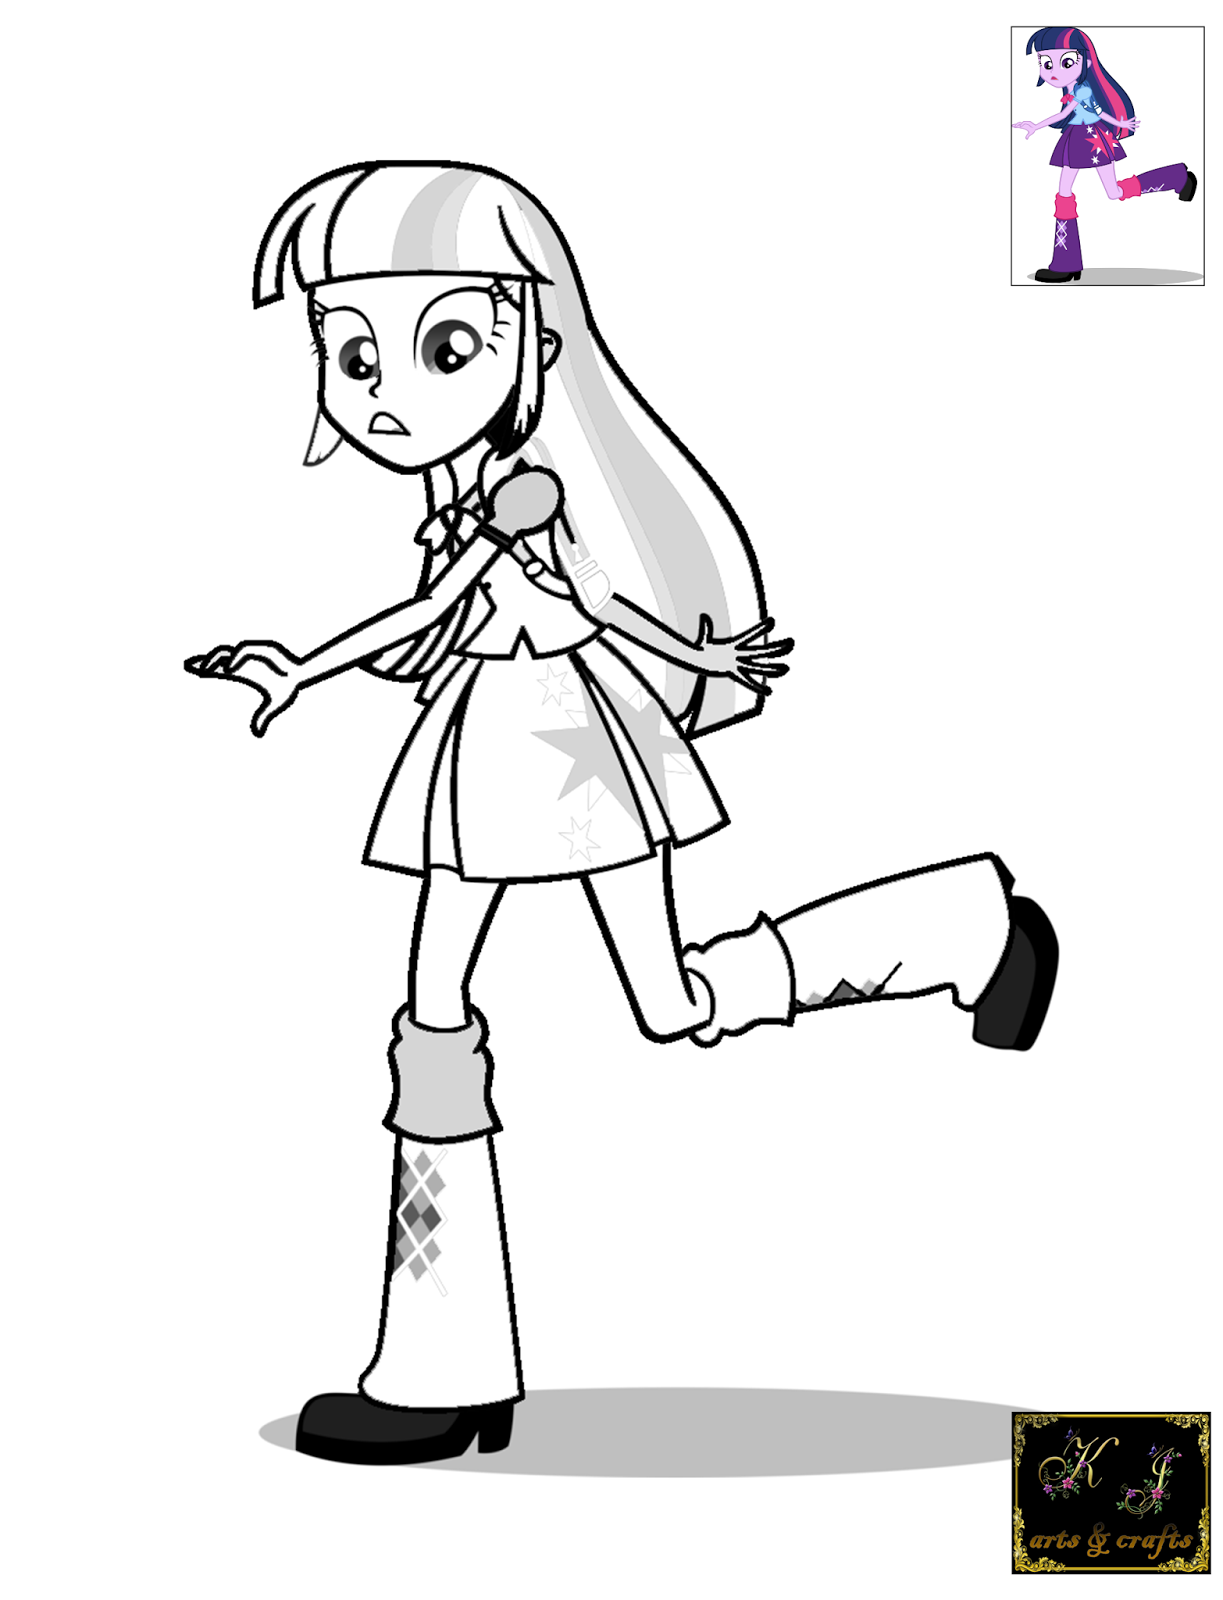 Free Coloring Pages Of Twilight Equestria Pages Equestria Twilight Sparkle Coloring Pages